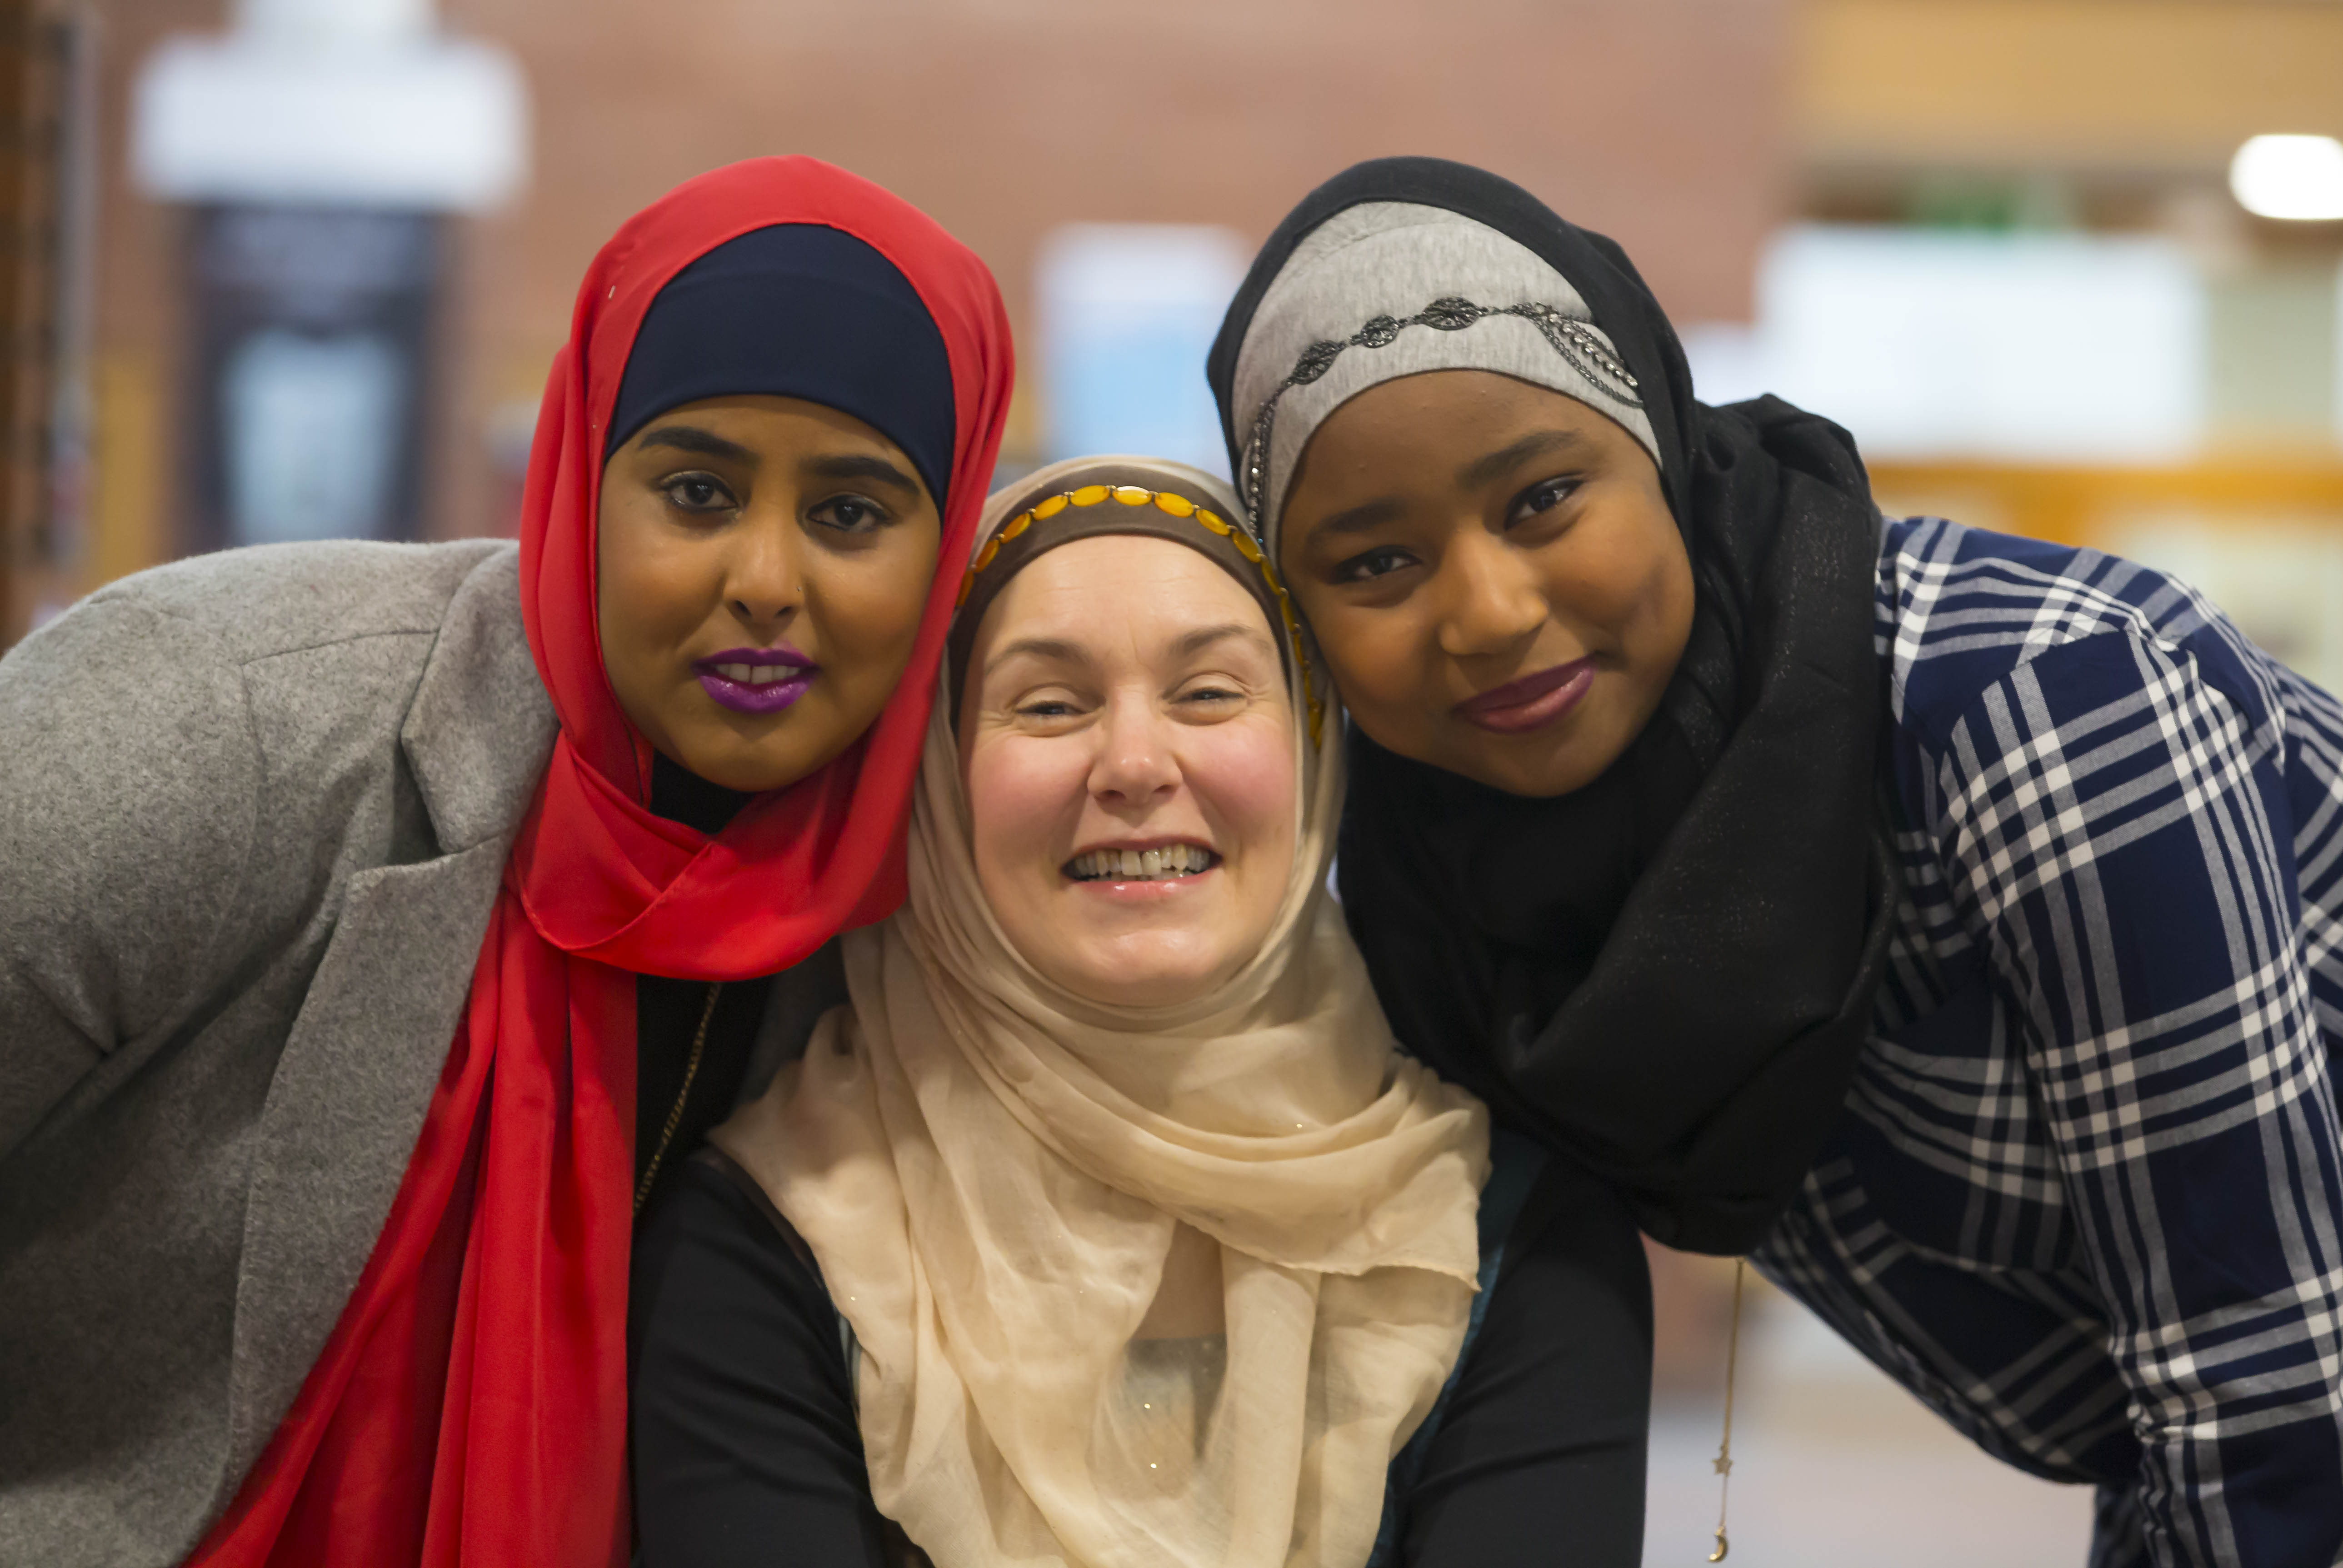 Women came together to celebrate World Hijab Day at WIT, to experience wearing the hijab and understanding the Muslim culture